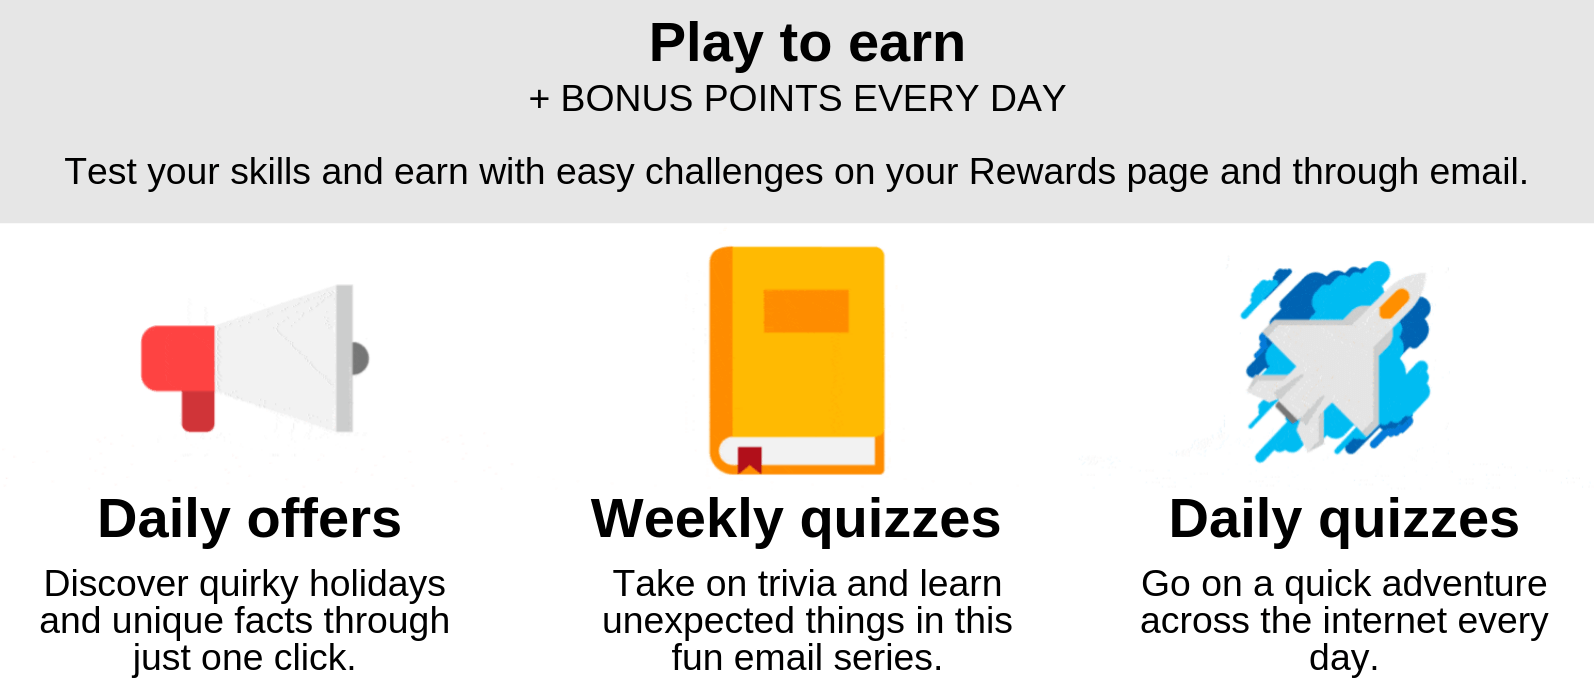 microsoft rewards play to earn